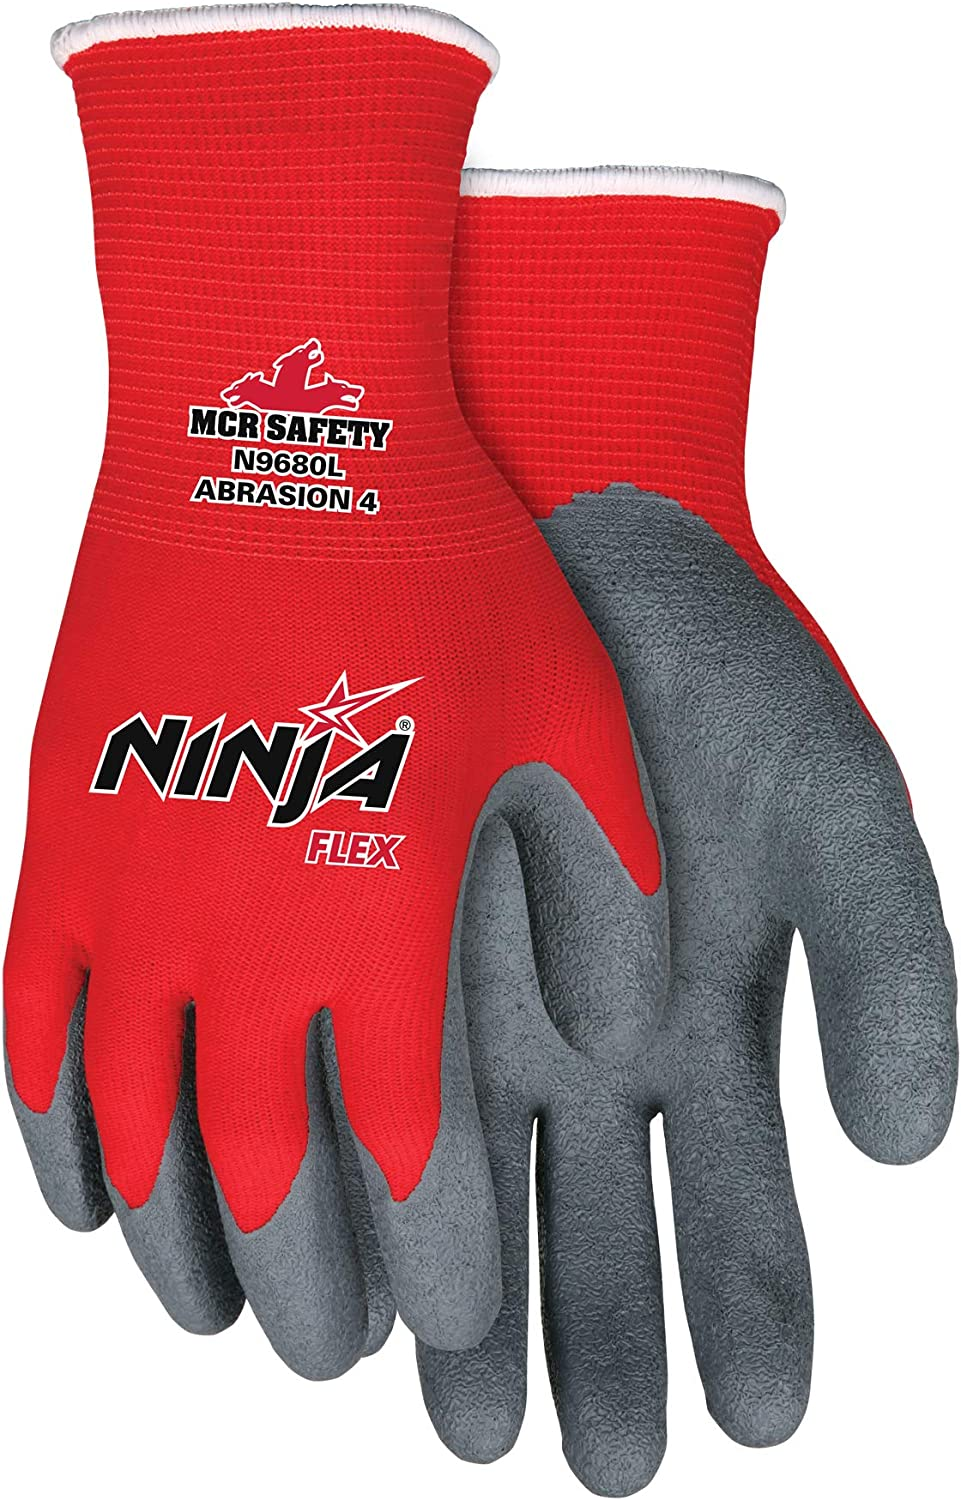 Memphis Glove N9680S Ninja Flex Nylon Shell Gloves with Latex Dip Palm and Fingertips, Gray/Red, Small, 1-Pair